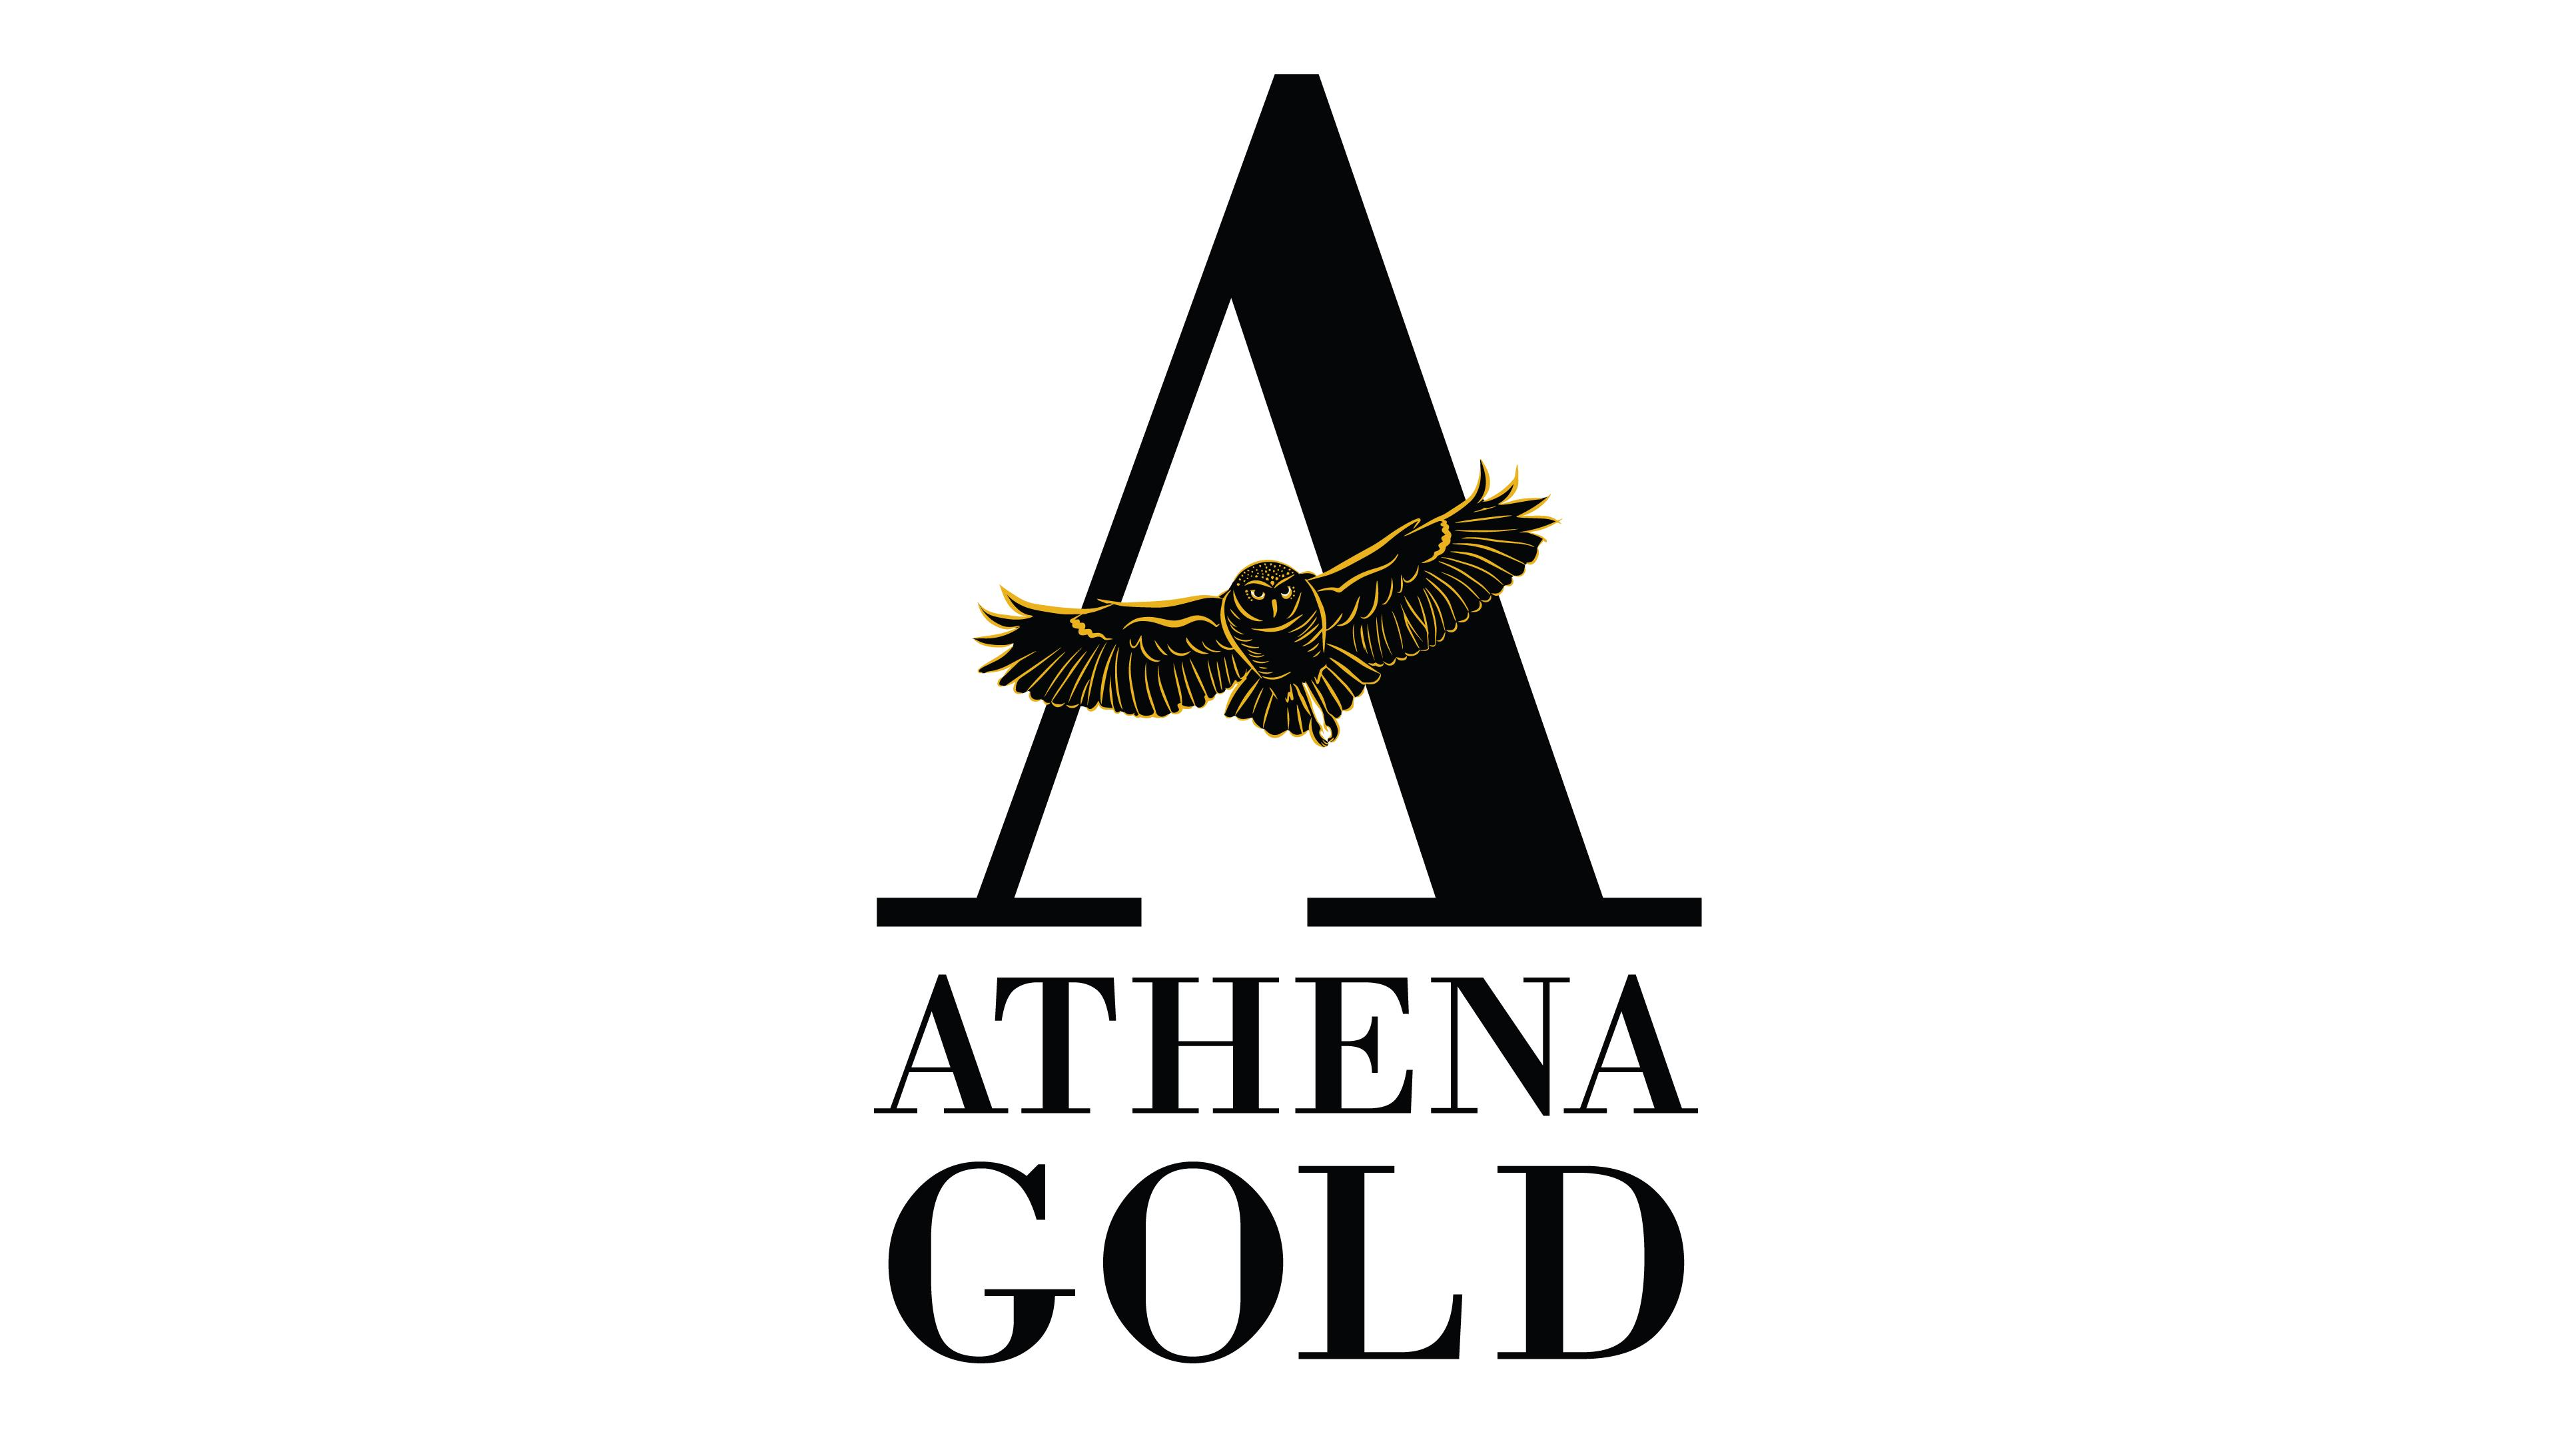 Athena Gold Closes CDN $500,000 First Tranche of Private Placement and Applies for Listing on the Canadian Stock Exchange